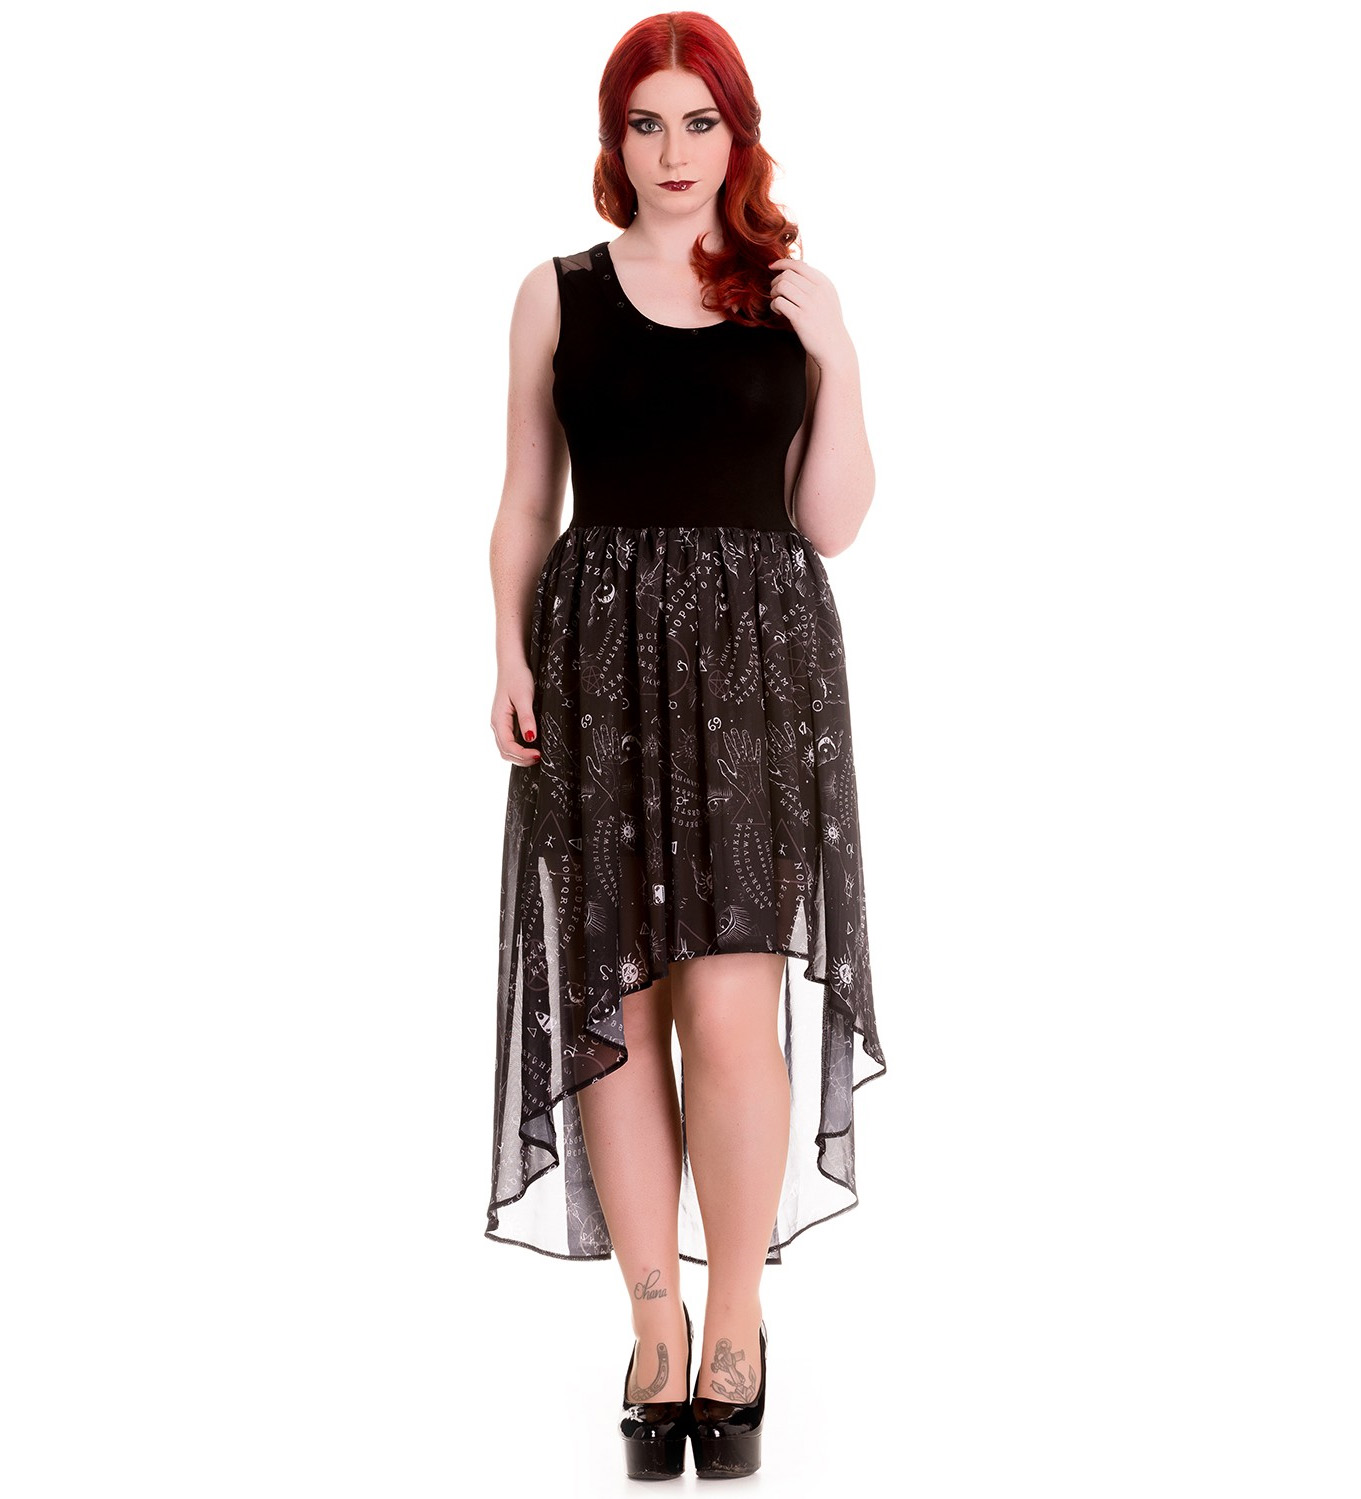 HELL-BUNNY-Spin-Doctor-Goth-Black-Witch-Ouija-SPIRIT-Dress-All-Sizes thumbnail 19